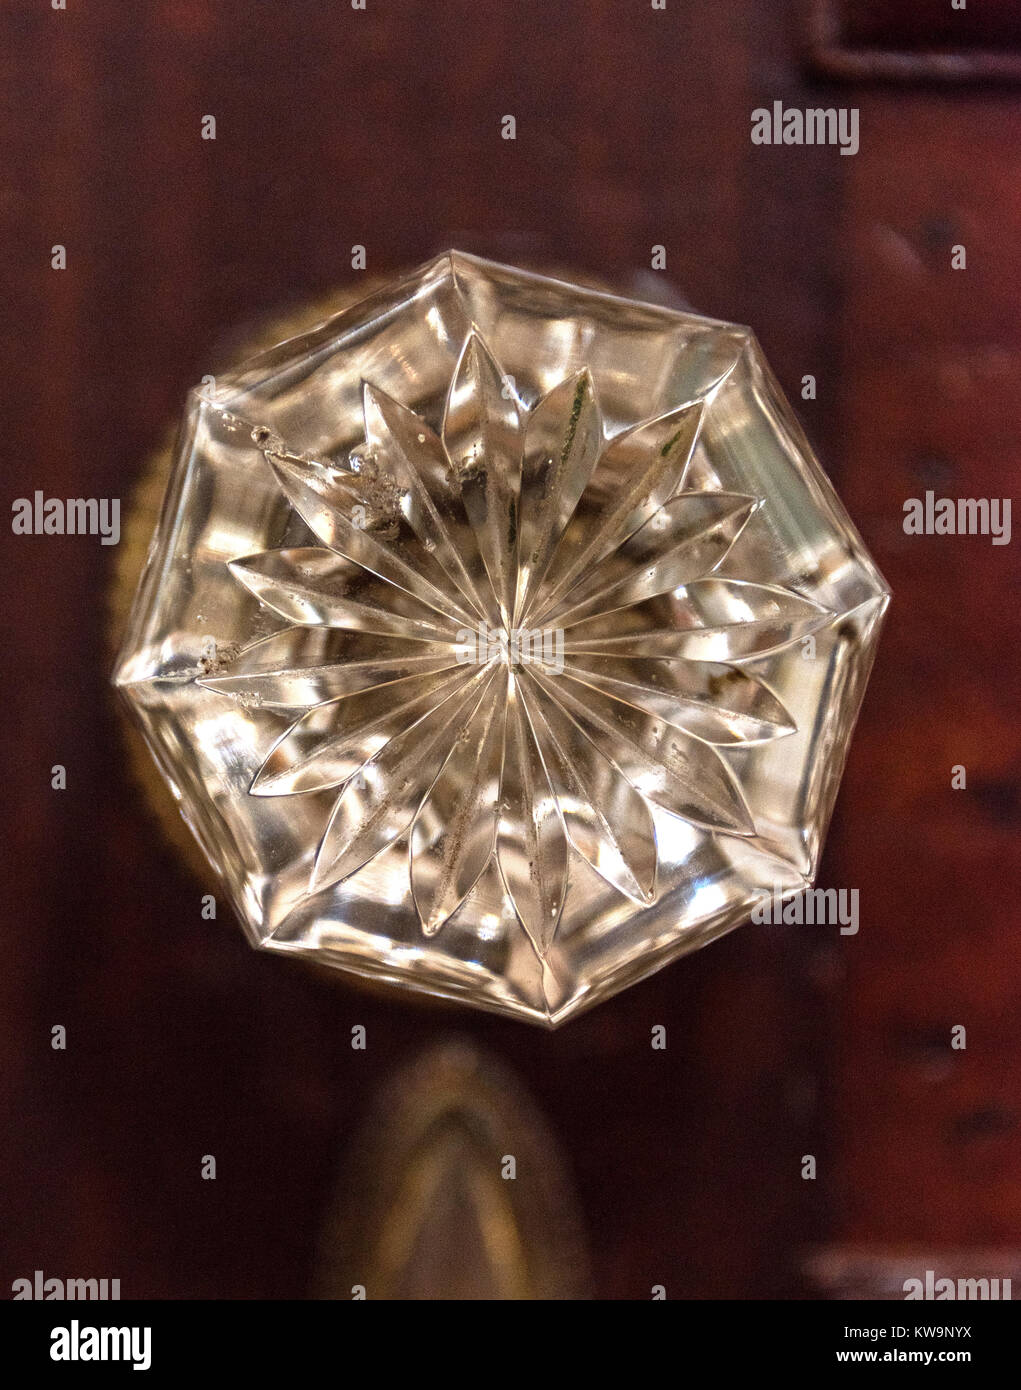 Antique Crystal Doorknob, Bar Harbor, Maine   Stock Image